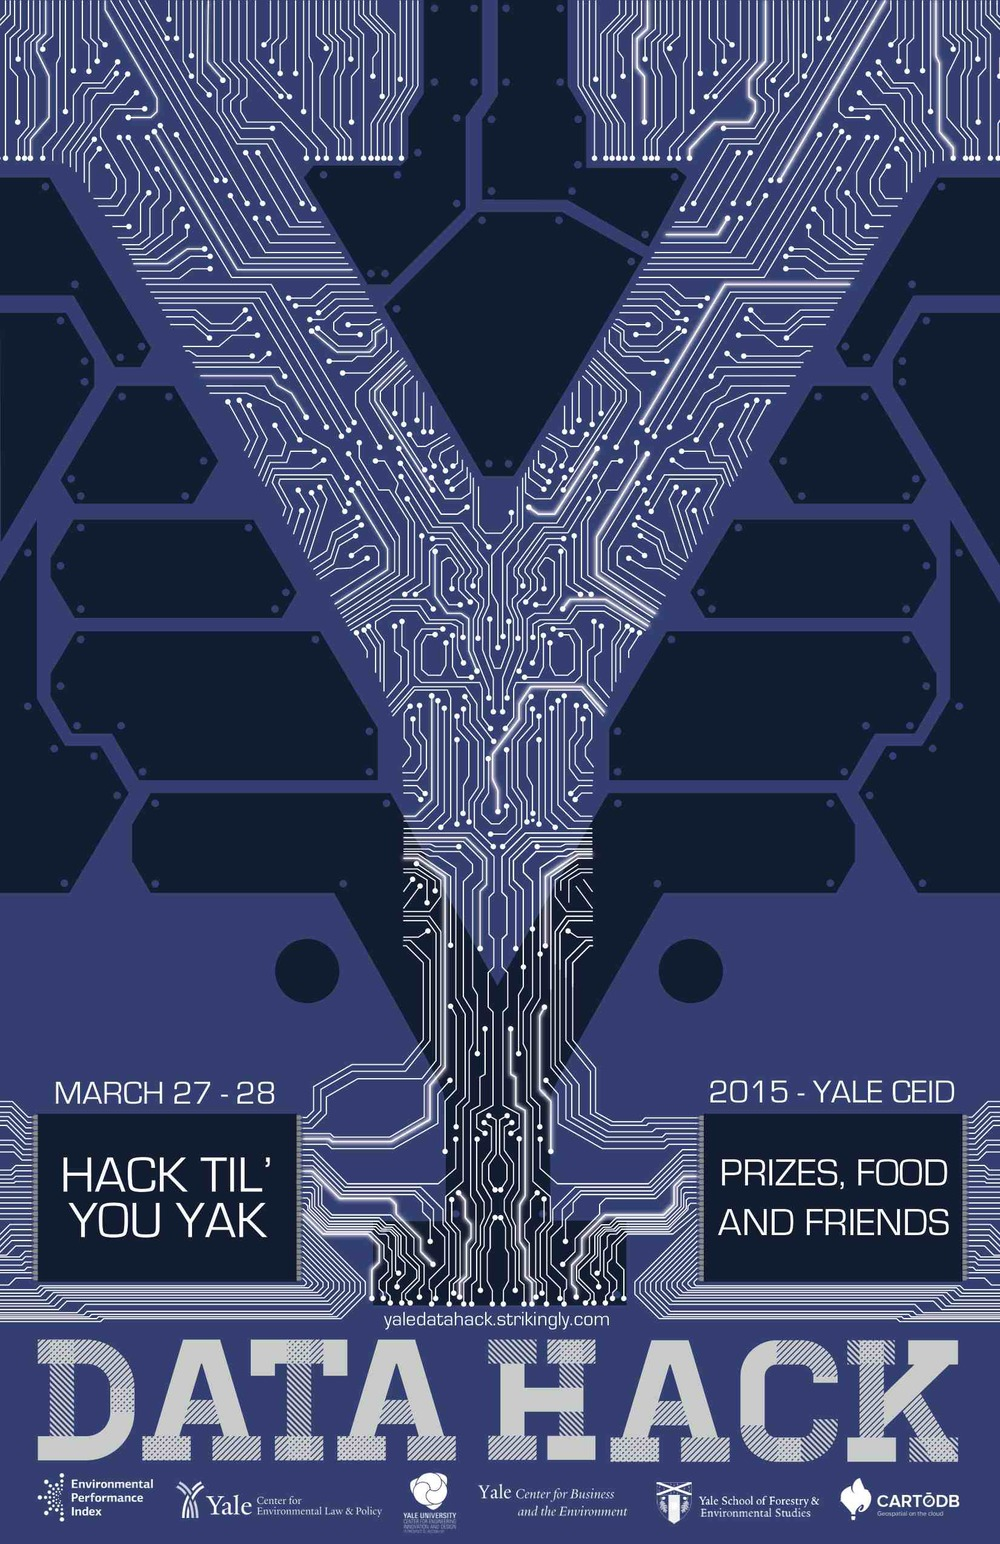 Data Hack 2015 is a hackathon to bring together cutting-edge research and next-generation information communication. We're pairing Yale researchers with designers, programmers, and writers and marketers to make data come alive through creative visualization and interactive design. Whether you have a dataset you'd like to present or are interested in being a member of a collaborative data team, sign up today to get hacking!    We welcome creative types of all kinds. We mean it. No visualization technique is off limits - so painters, interpretative dancers, and storytellers, please join us!